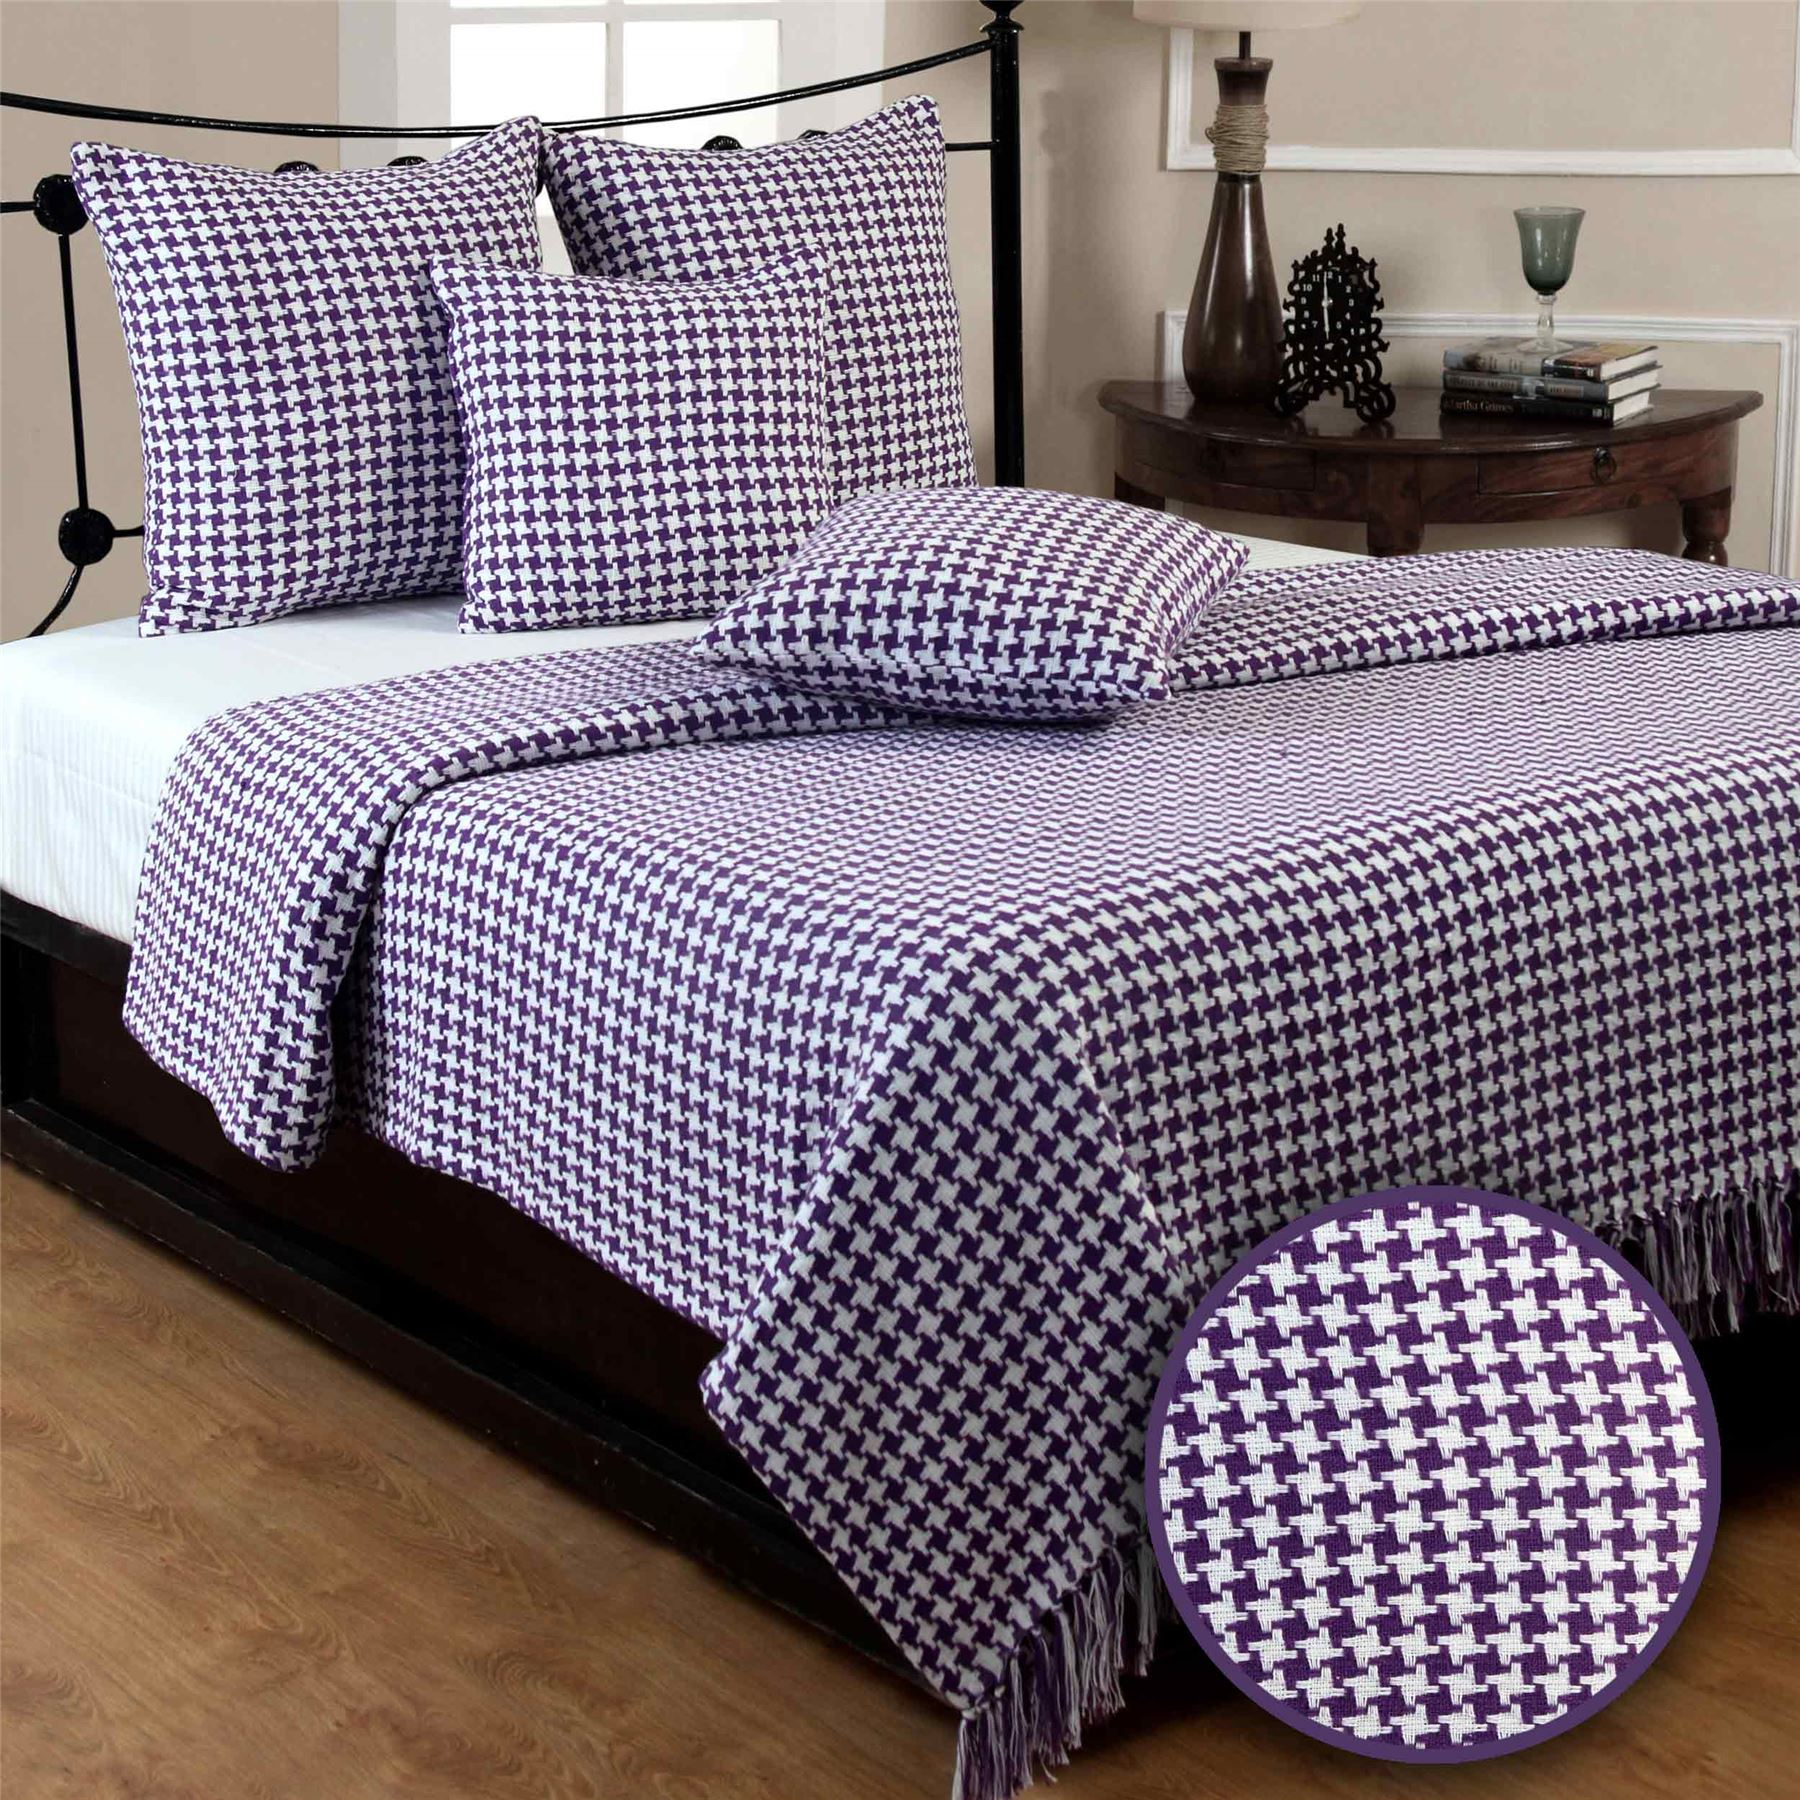 Houndstooth Cotton Check Extra Sofa Bed Throws Blanket